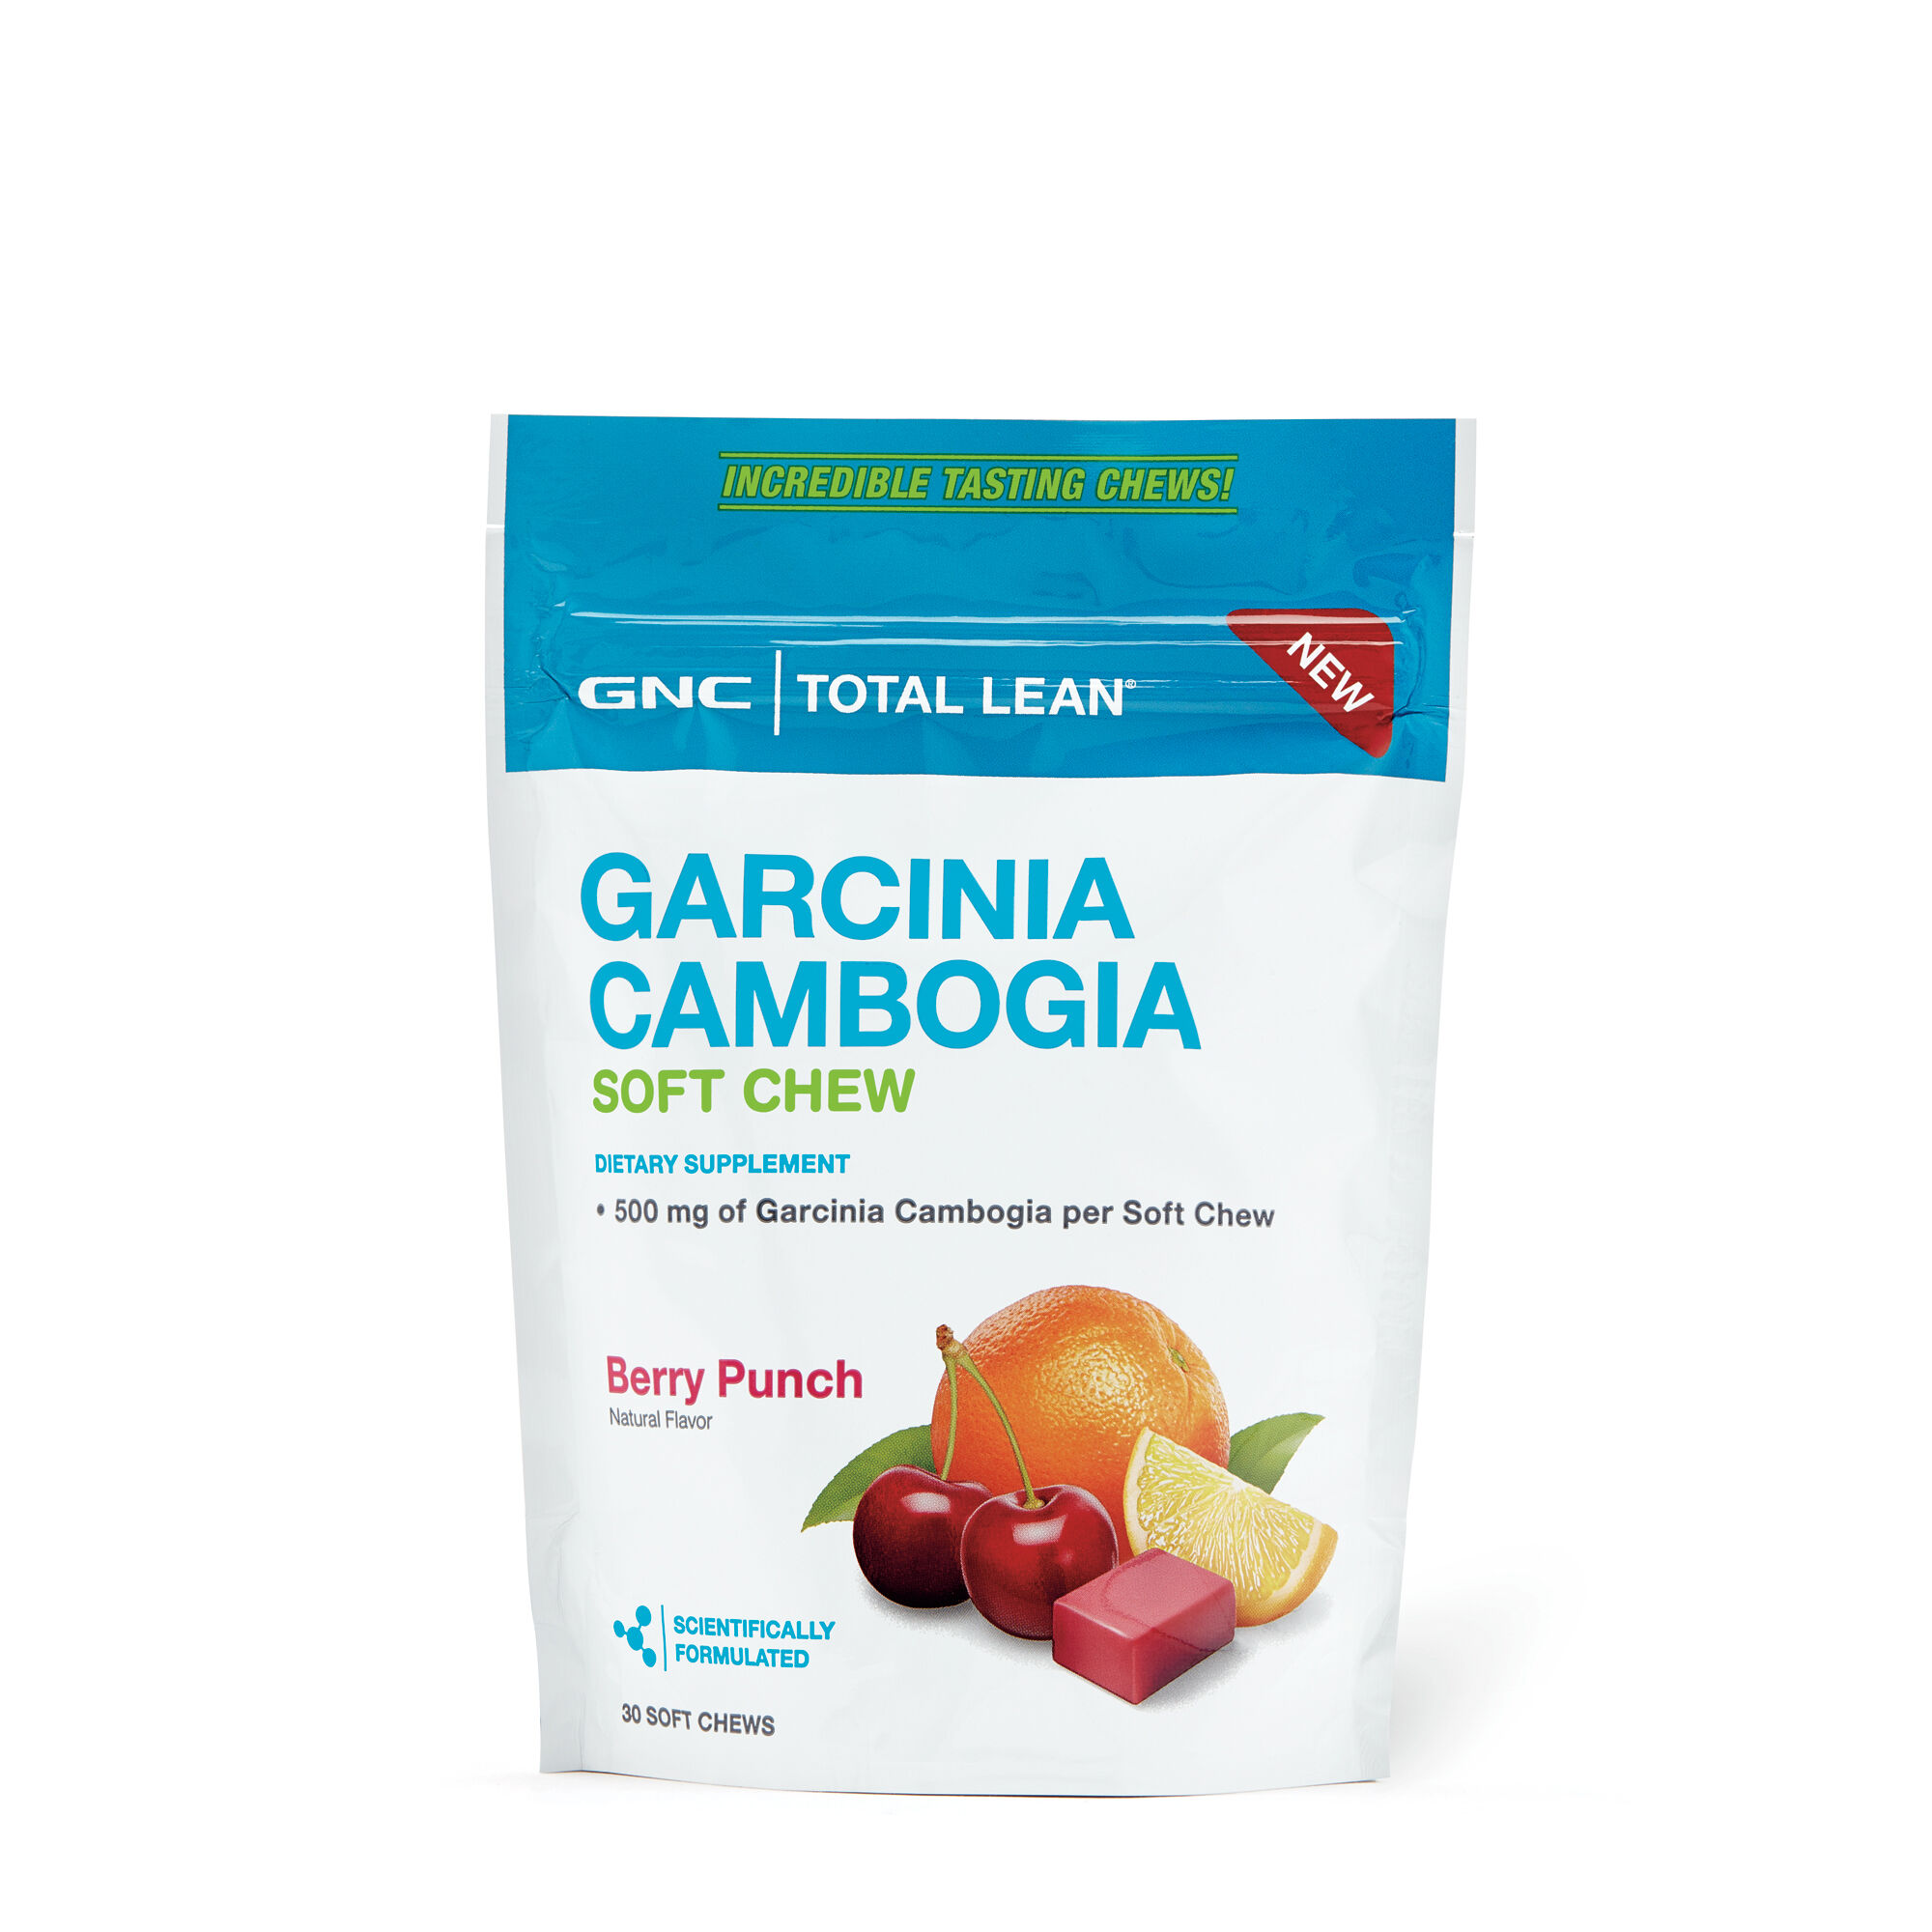 Gnc Total Lean Garcinia Cambogia Berry Punch Gnc